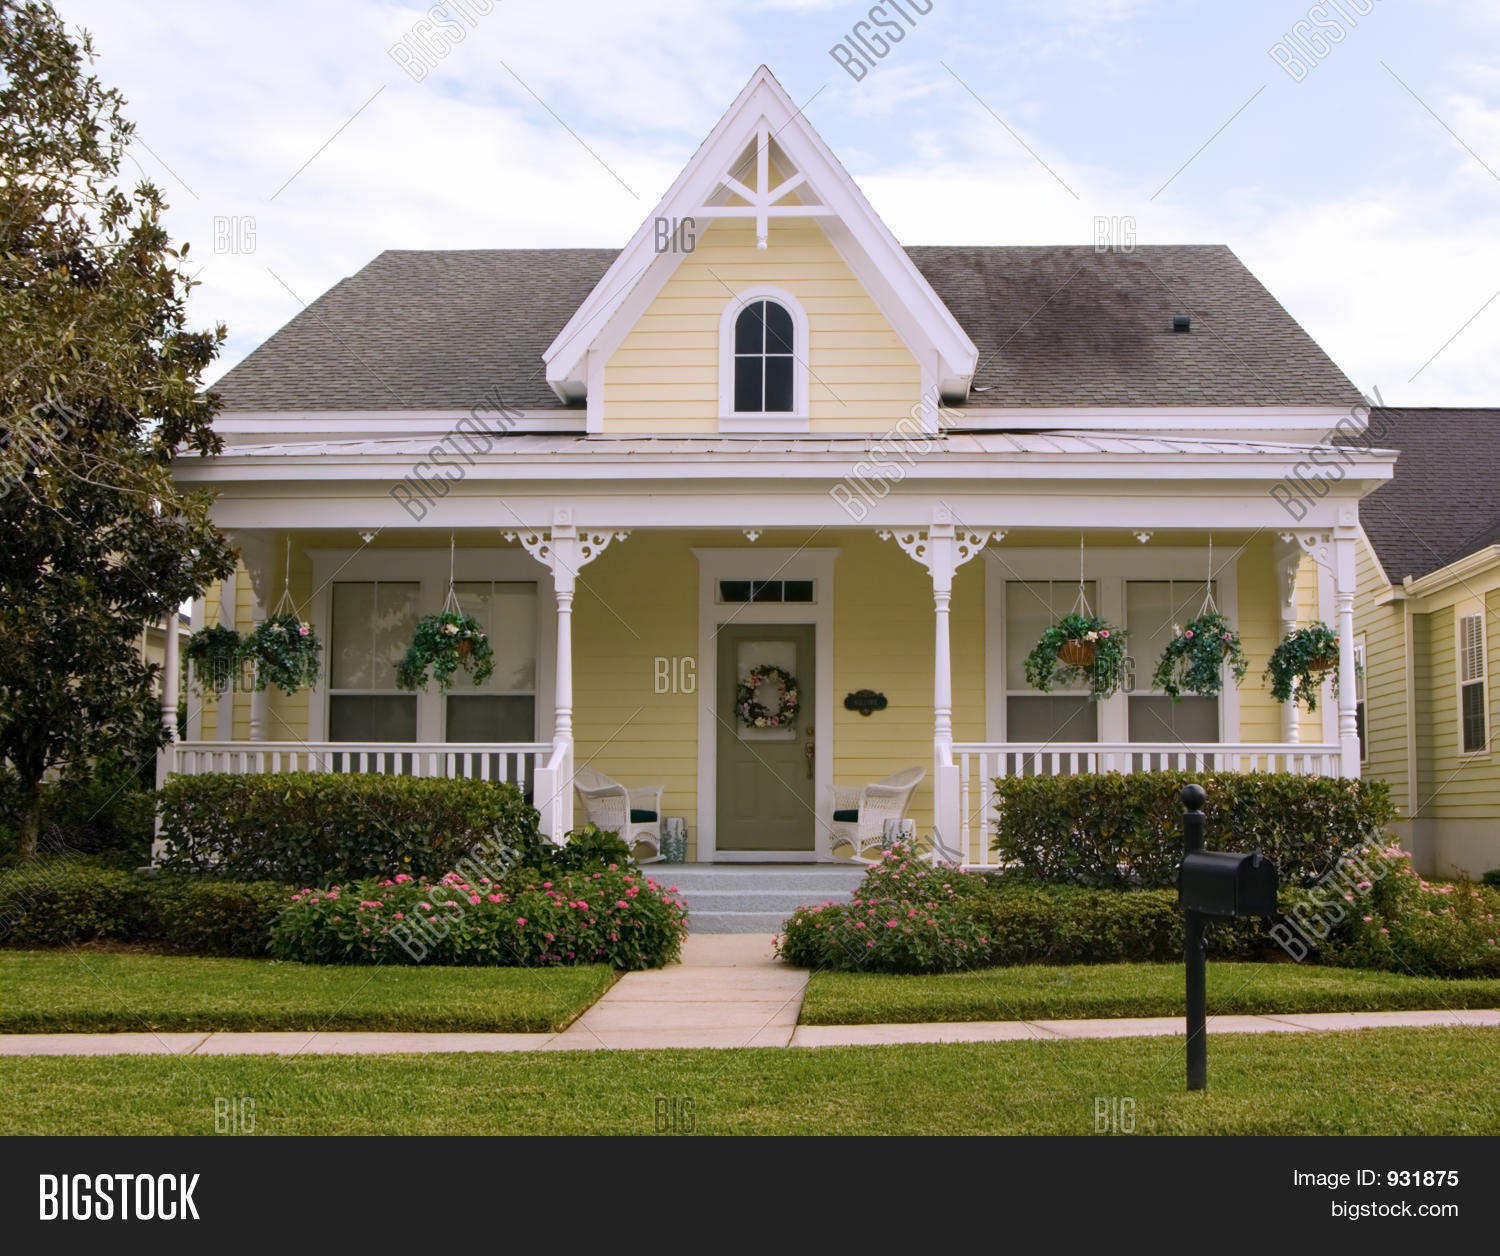 Victorian cottage image photo bigstock - Cottage image ...